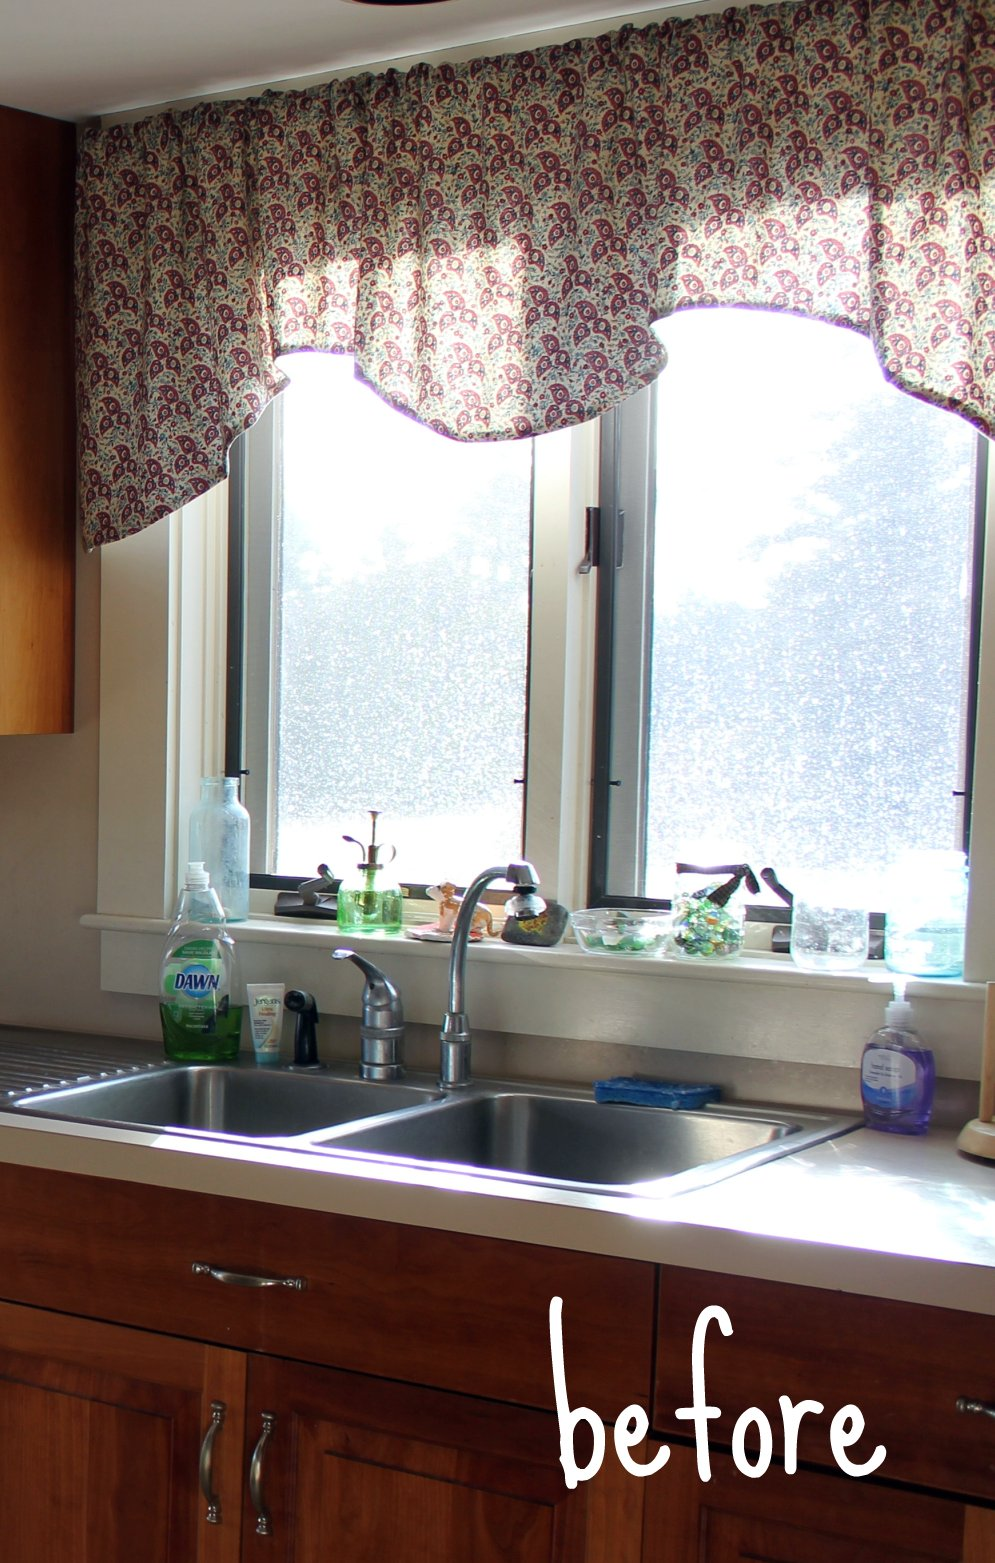 Not your usual kitchen window treatment - Window treatment ideas for kitchen ...